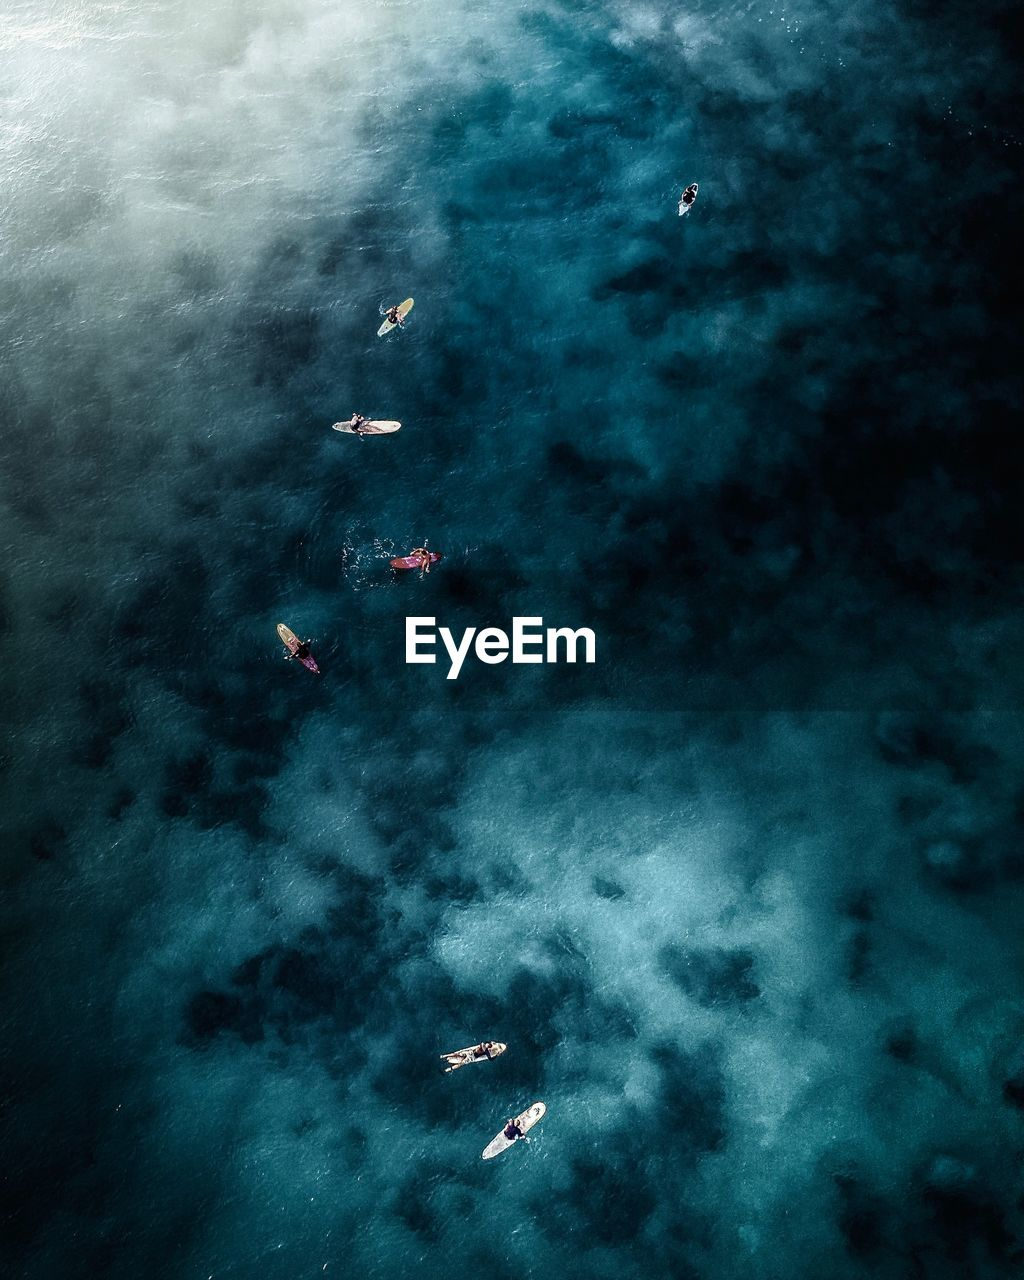 sea, nature, water, animal themes, high angle view, sport, beauty in nature, animal, outdoors, underwater, swimming, animal wildlife, real people, sea life, animals in the wild, scenics - nature, group of people, cloud - sky, adventure, undersea, marine